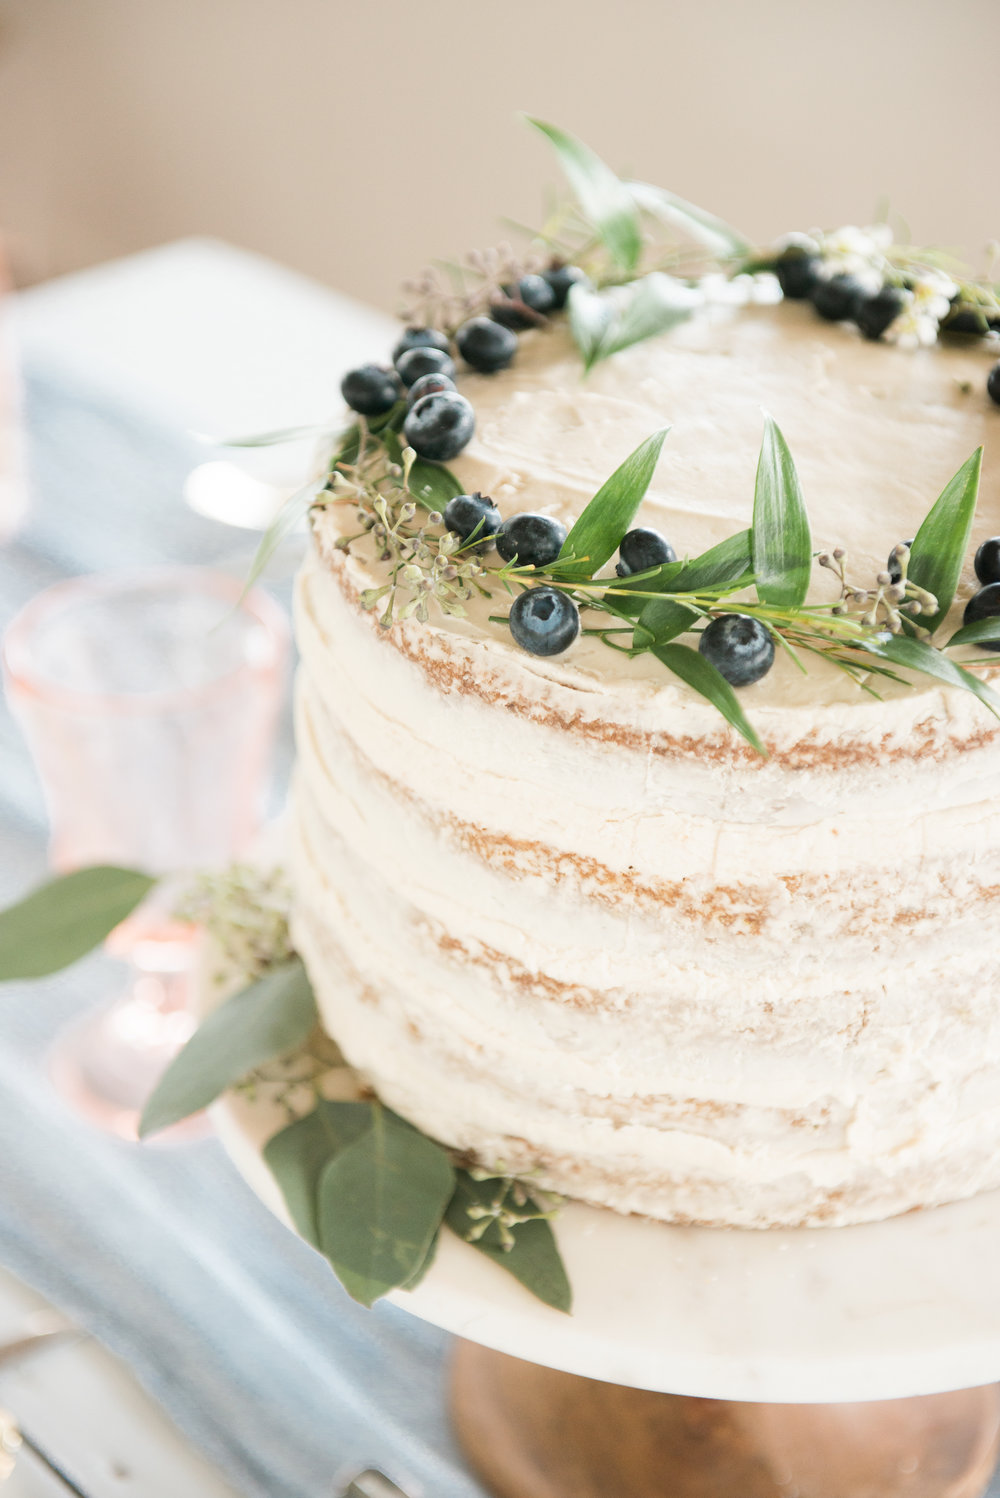 Naked cakes. Hey Sugar Cookie. Round Top. The Vintage Round Top. Bridal shower. Photo styling. Paige's blog.